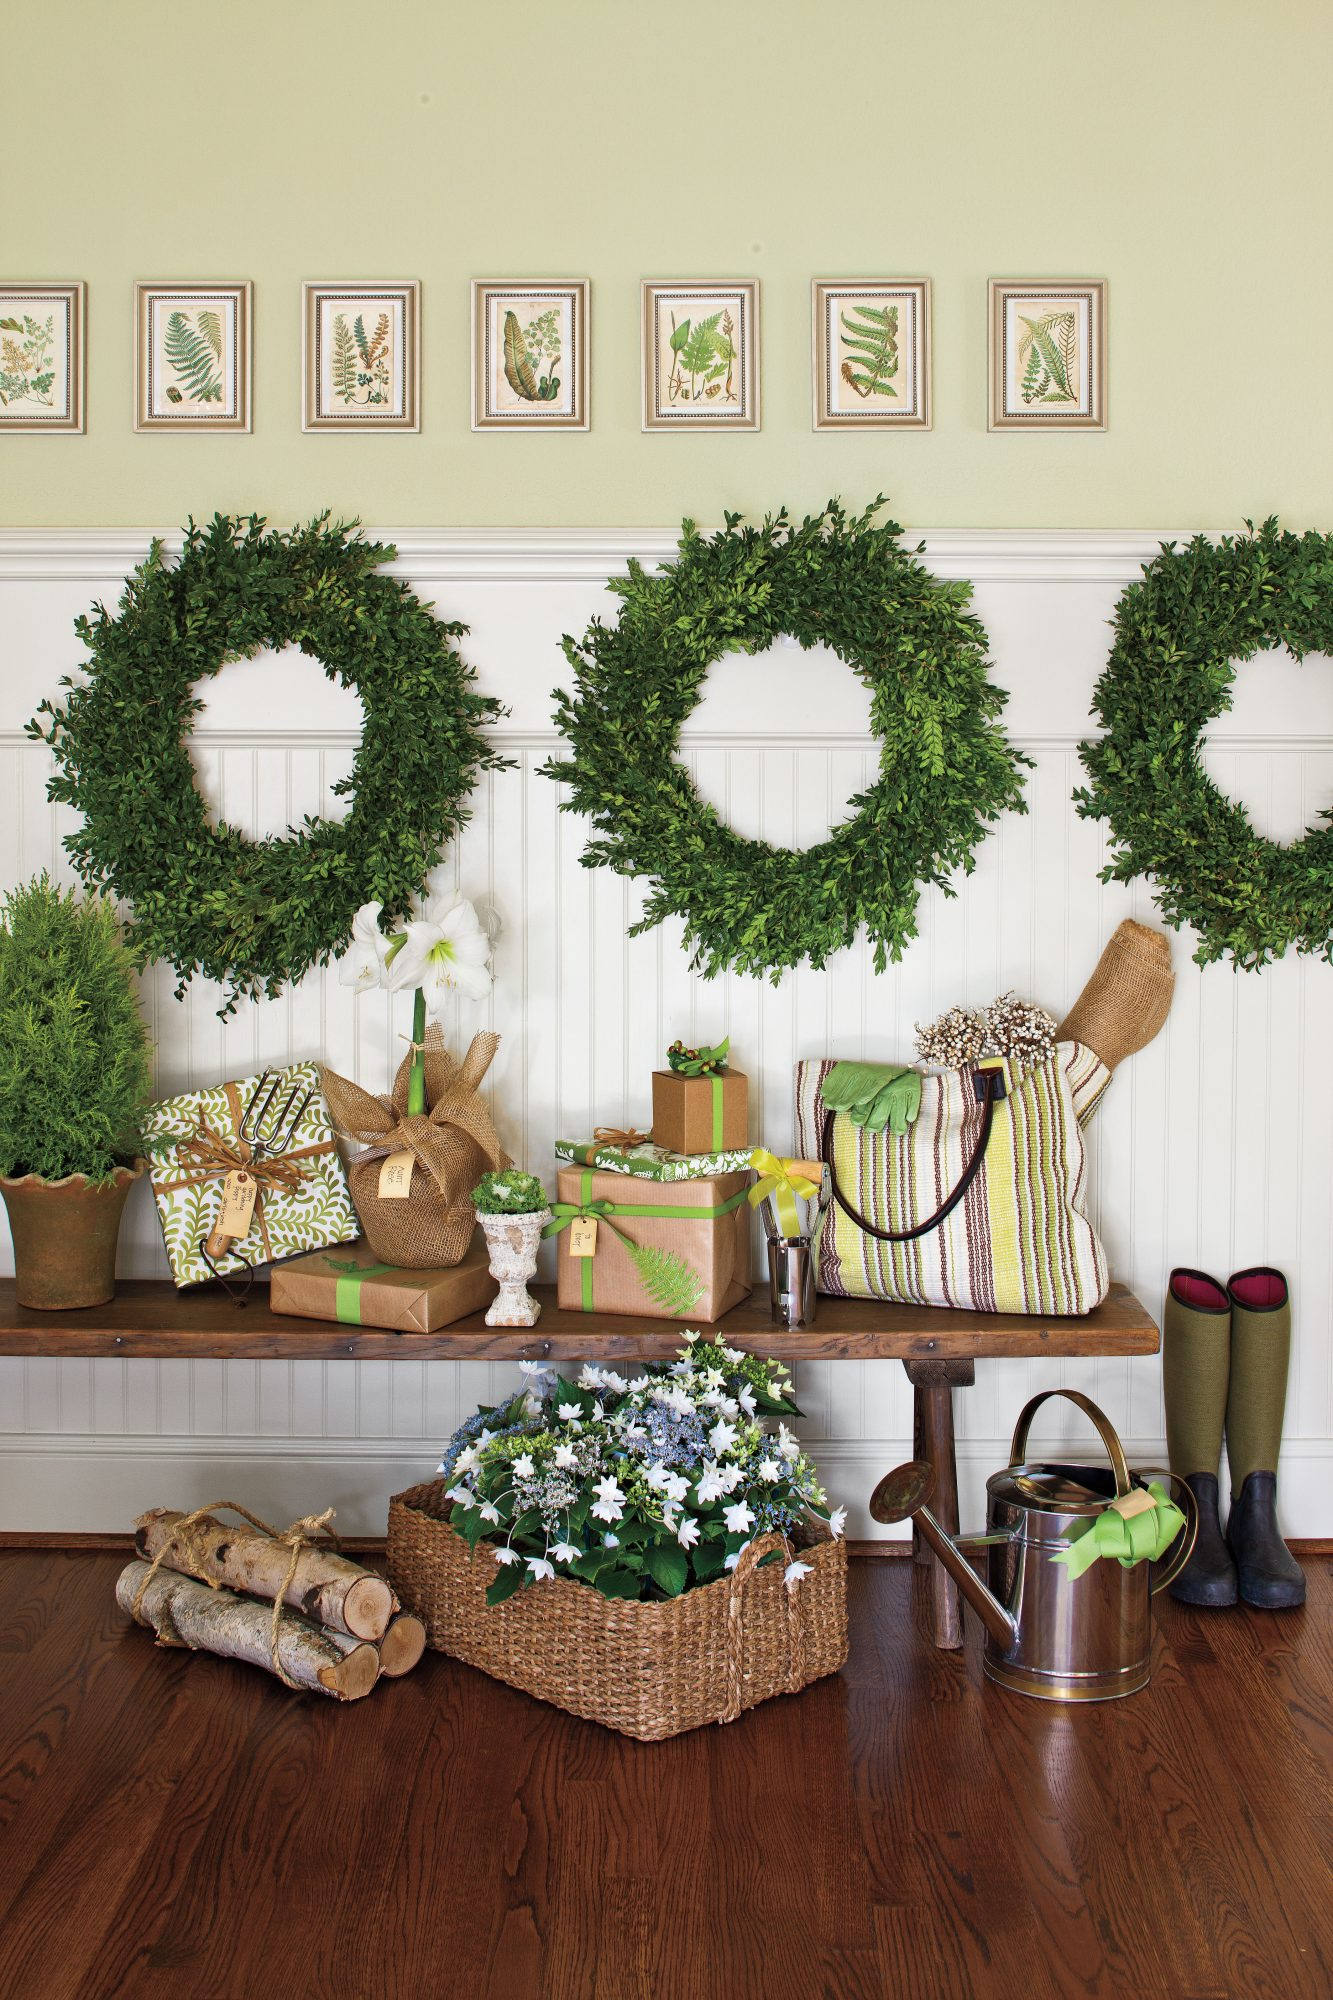 Hang Wreaths on Wainscoting